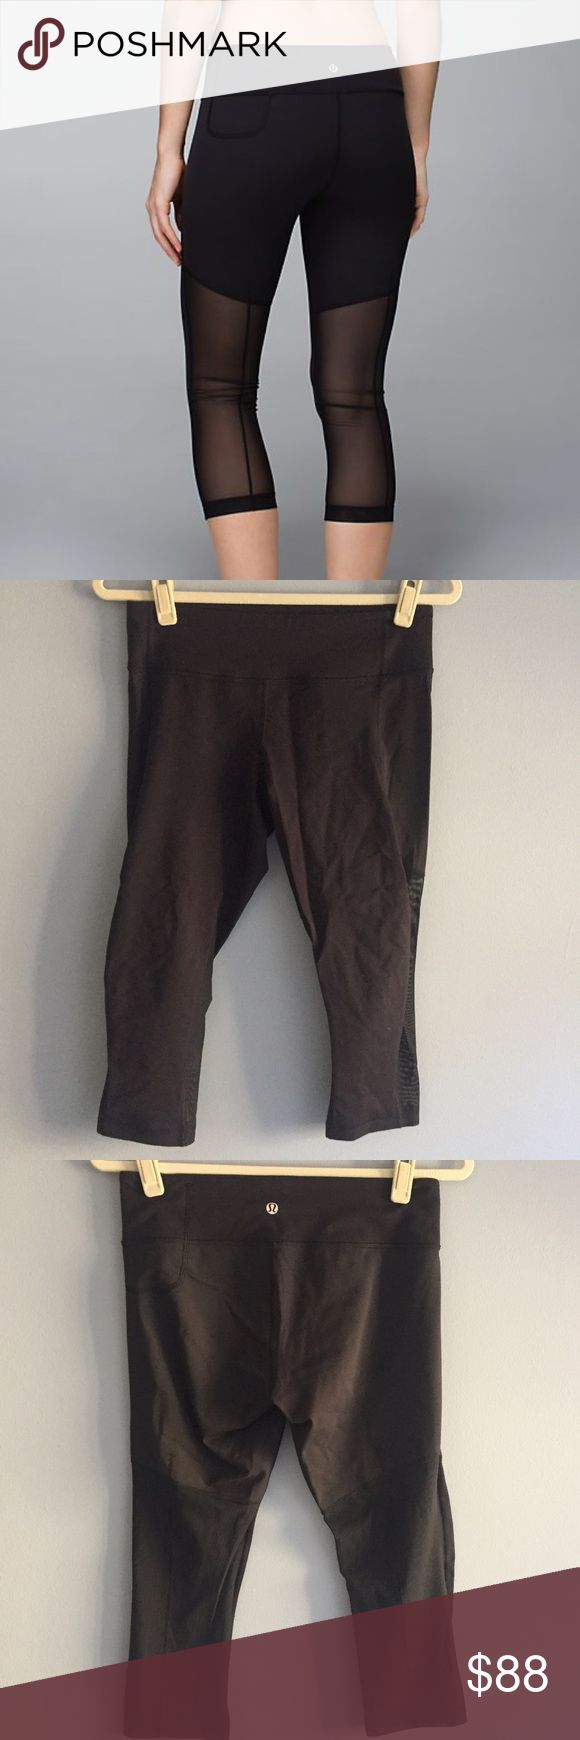 Lululemon Breathe Easy Crop Black Size 8 Lululemon Breathe Easy Crop Black Size 8. Luon in the front, mesh and full on luxtreme in the back. Great for yoga, spin, gym, anything! Cellphone pocket at back left. Like New Condition! 🚫NO TRADES🚫 lululemon athletica Pants Track Pants & Joggers